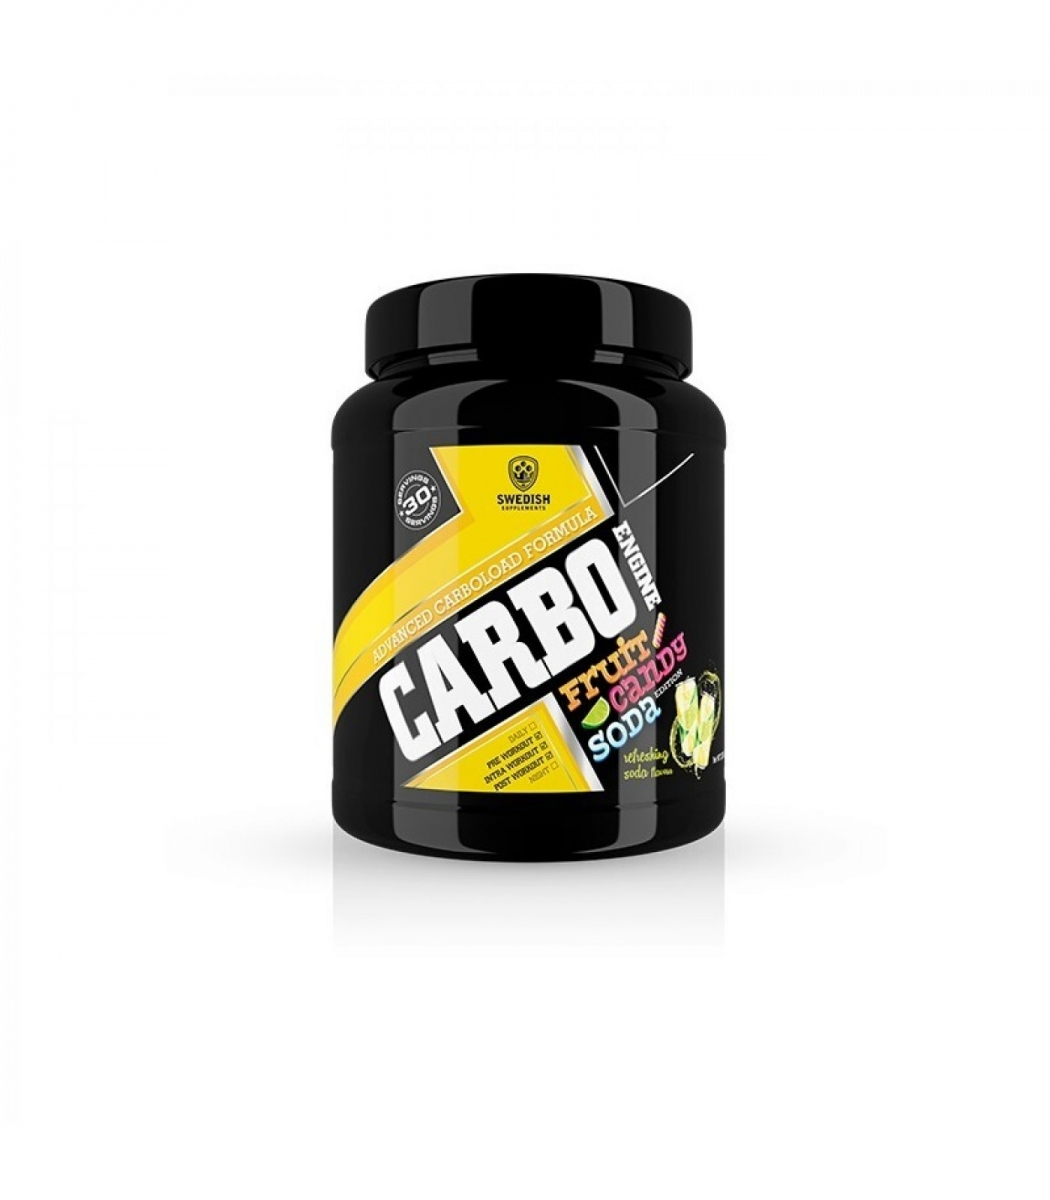 SWEDISH Supplements Carbo Engine 1000g